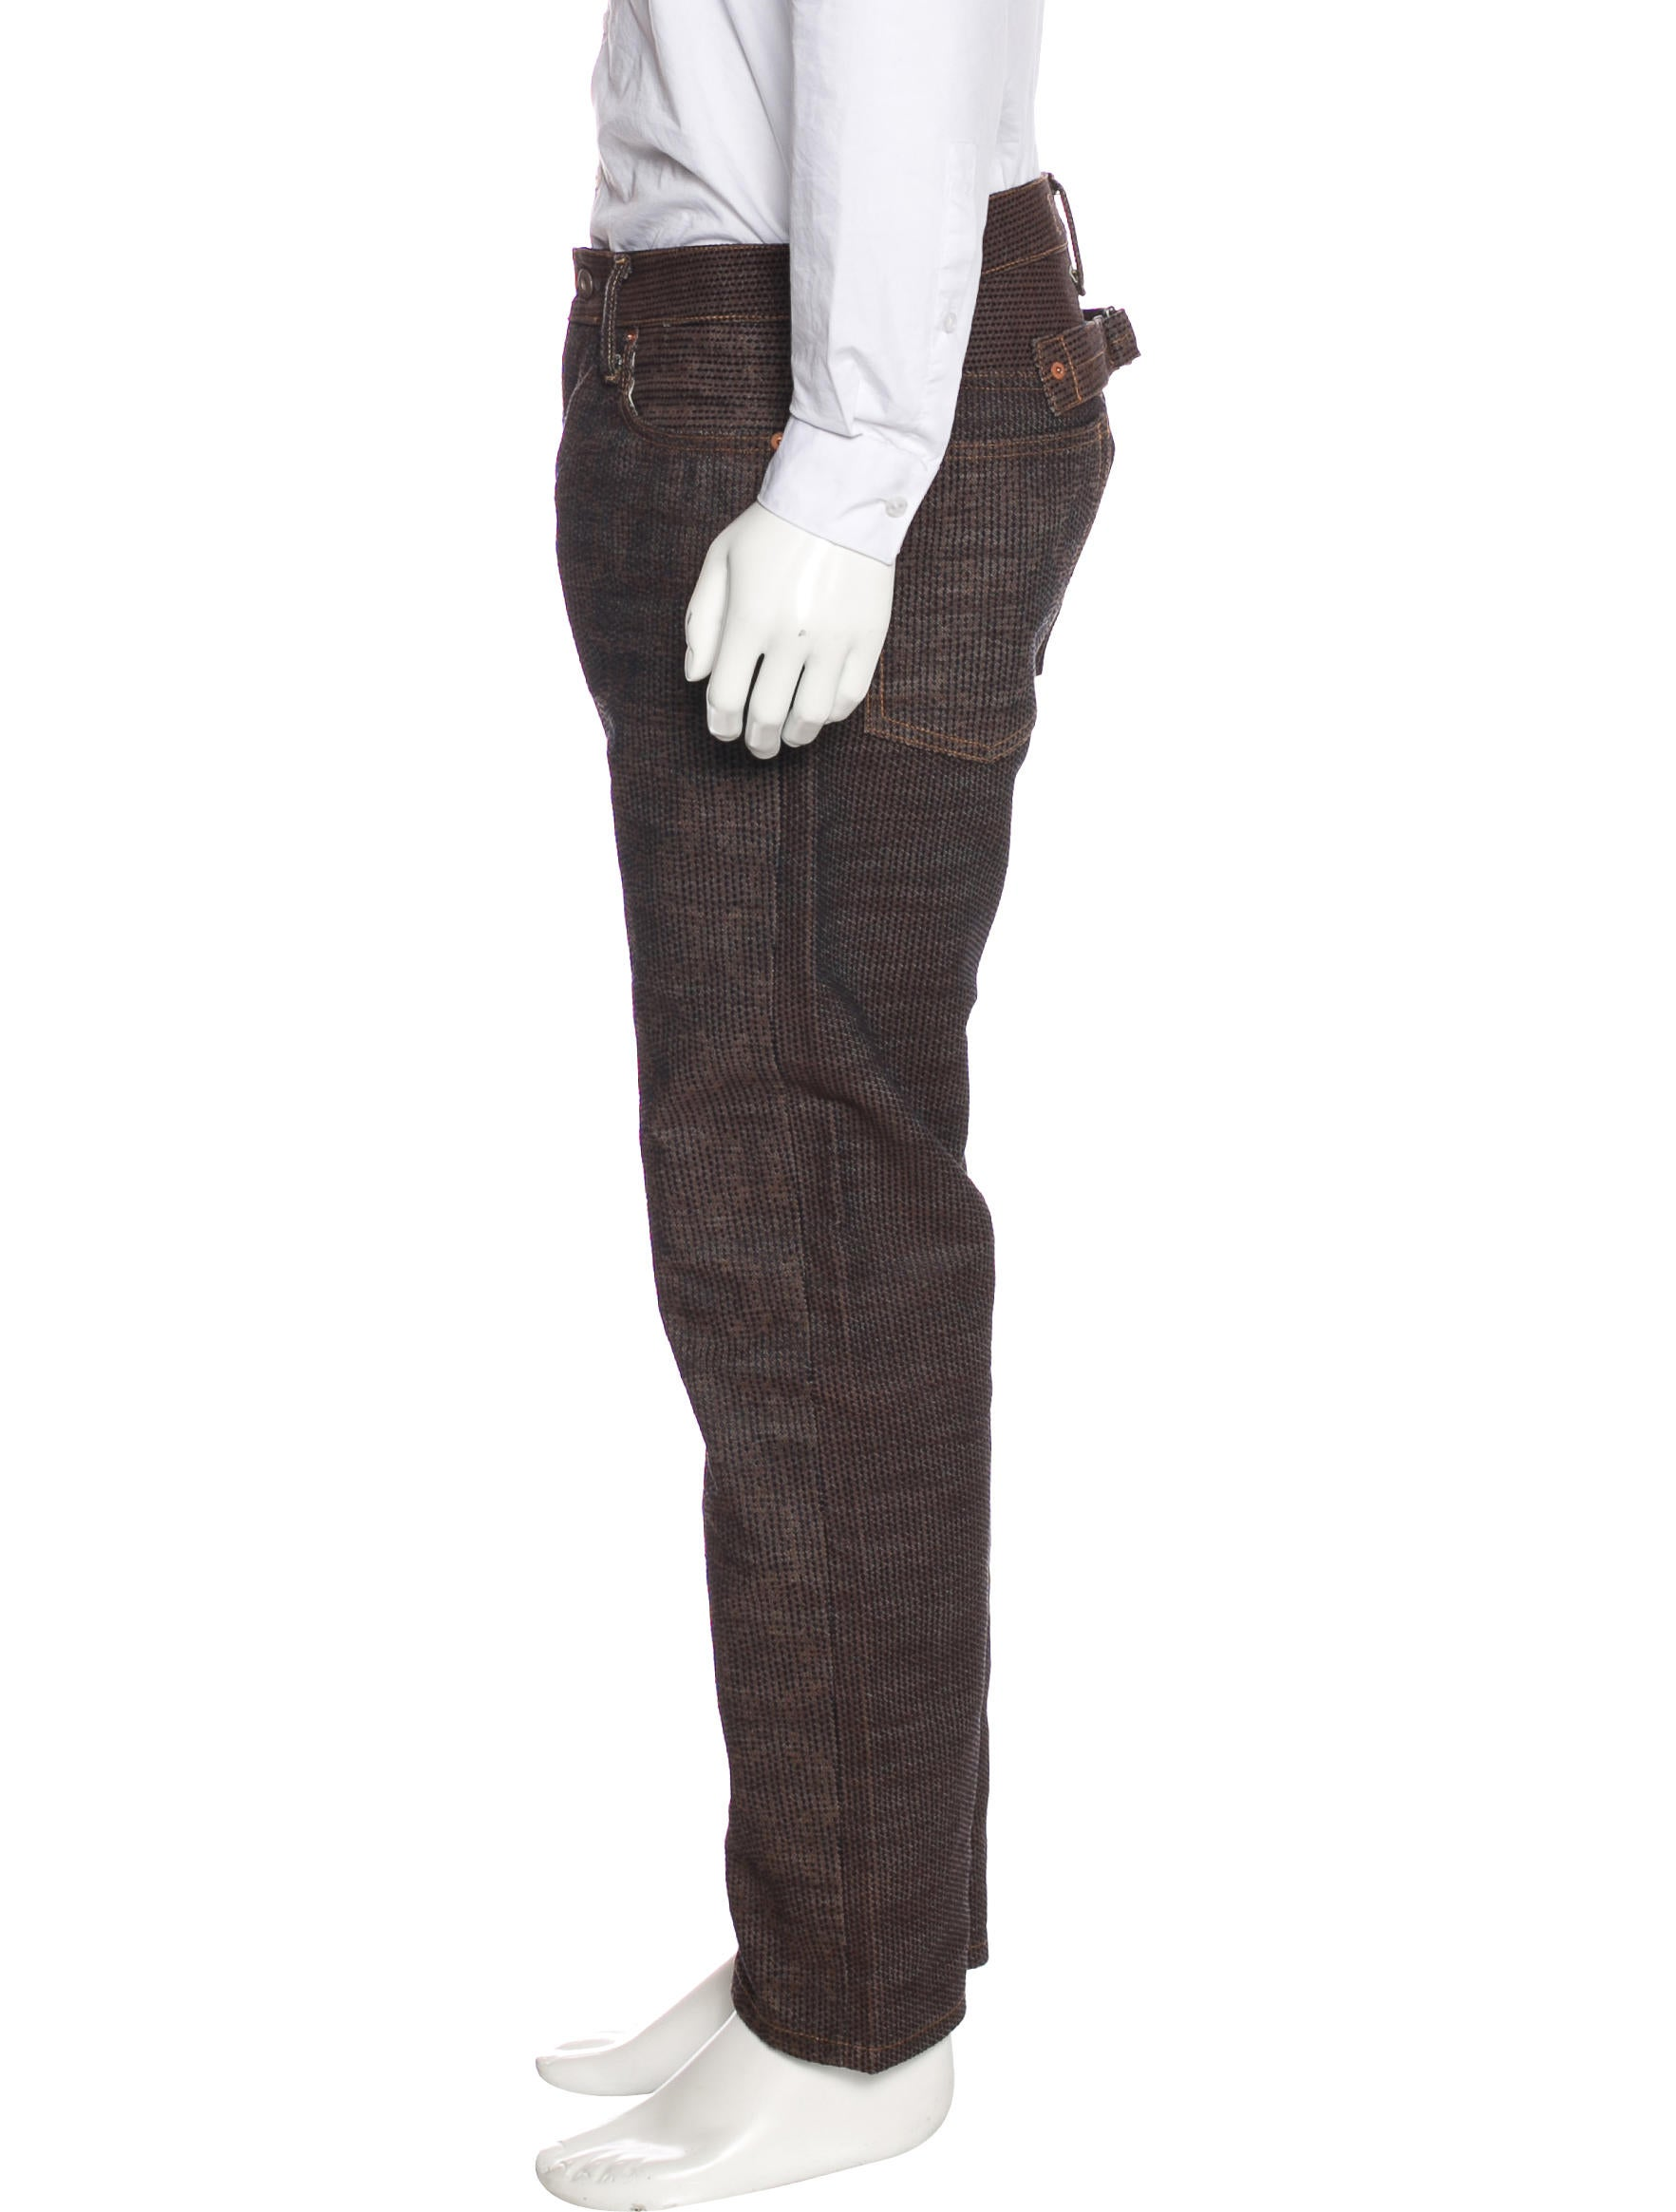 Kapital embroidered straight leg jeans clothing